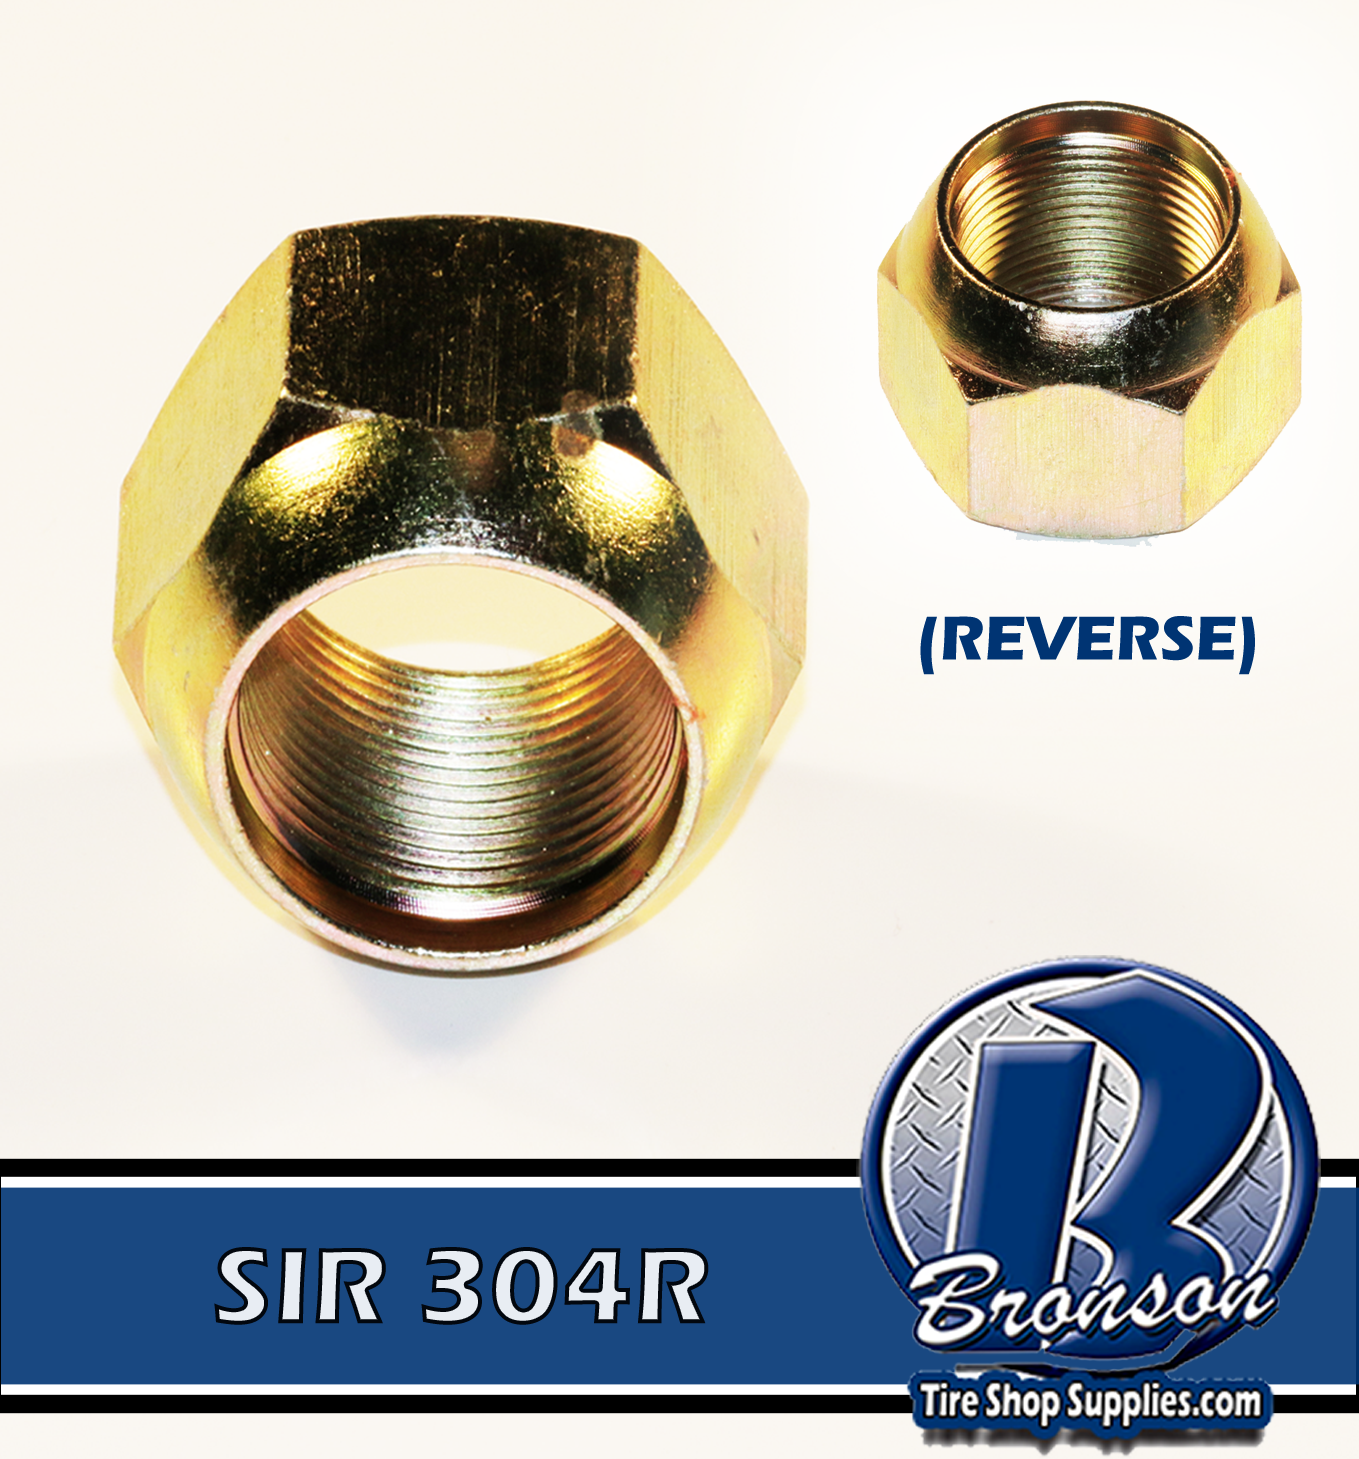 SIR 304R METRIC OUTER NUT